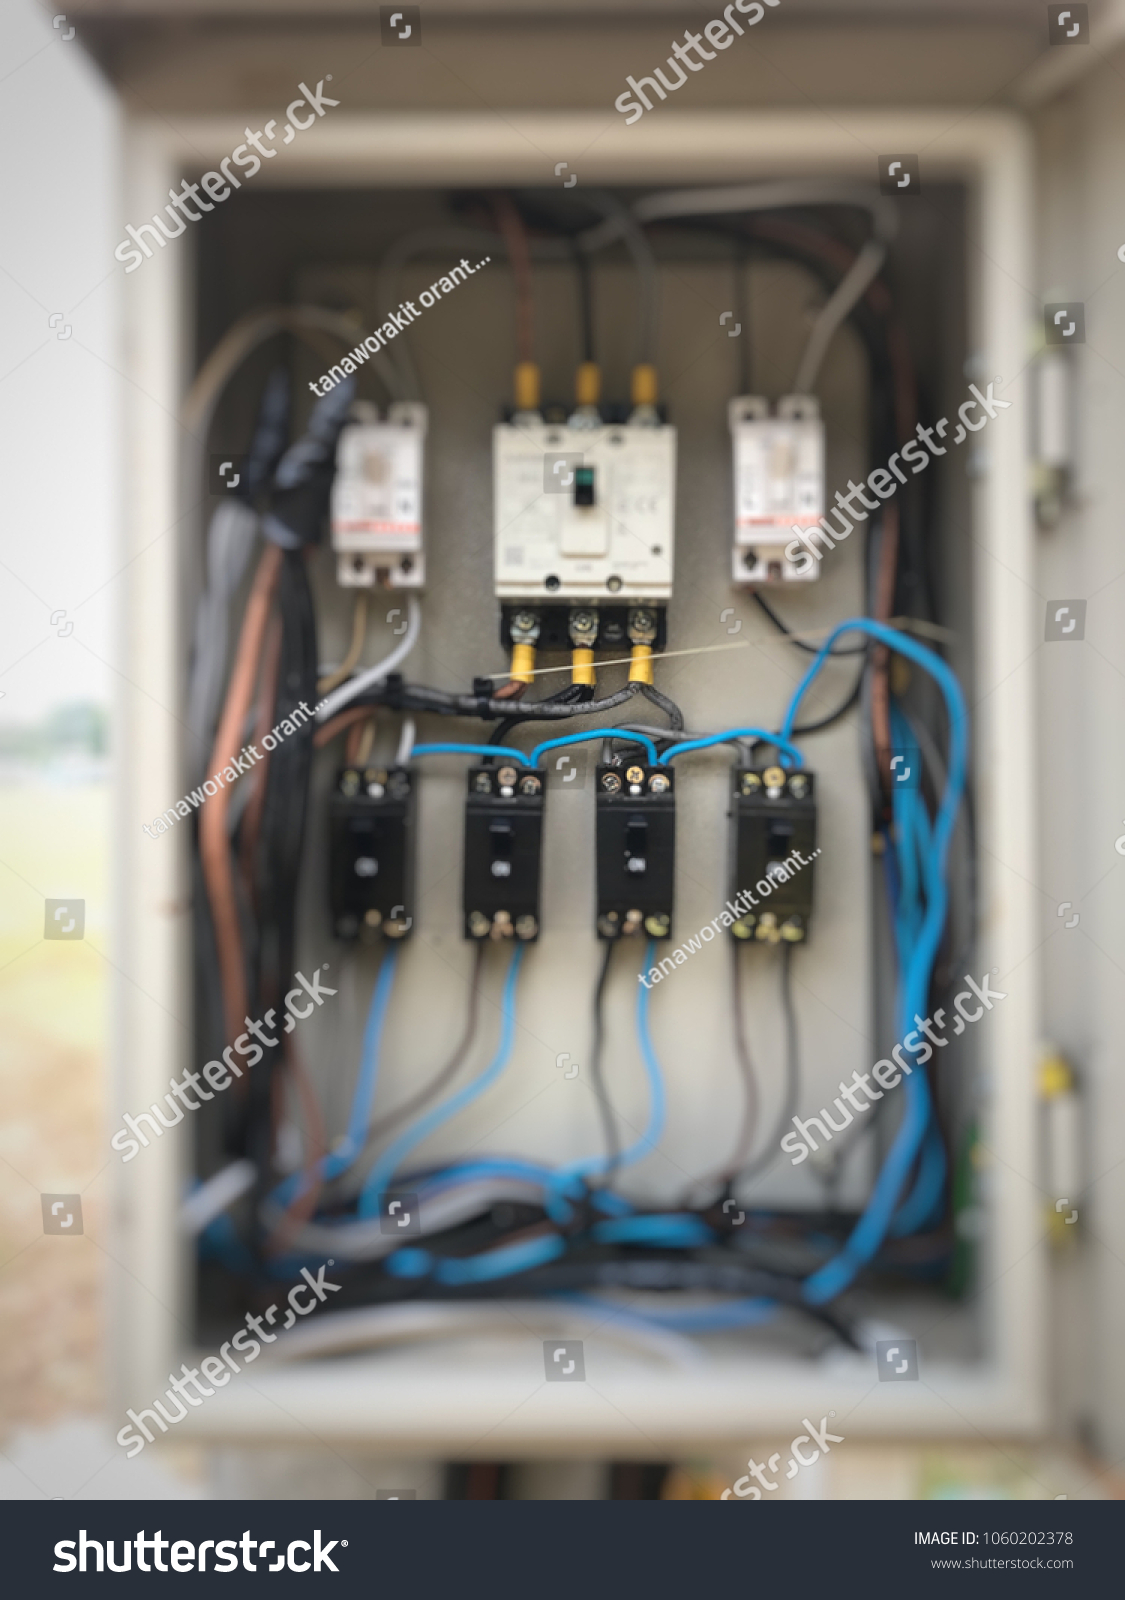 hight resolution of electric circuit breaker electric box electricity distribution box with wire and circuit breaker electric breaker switch installed on a cement pole